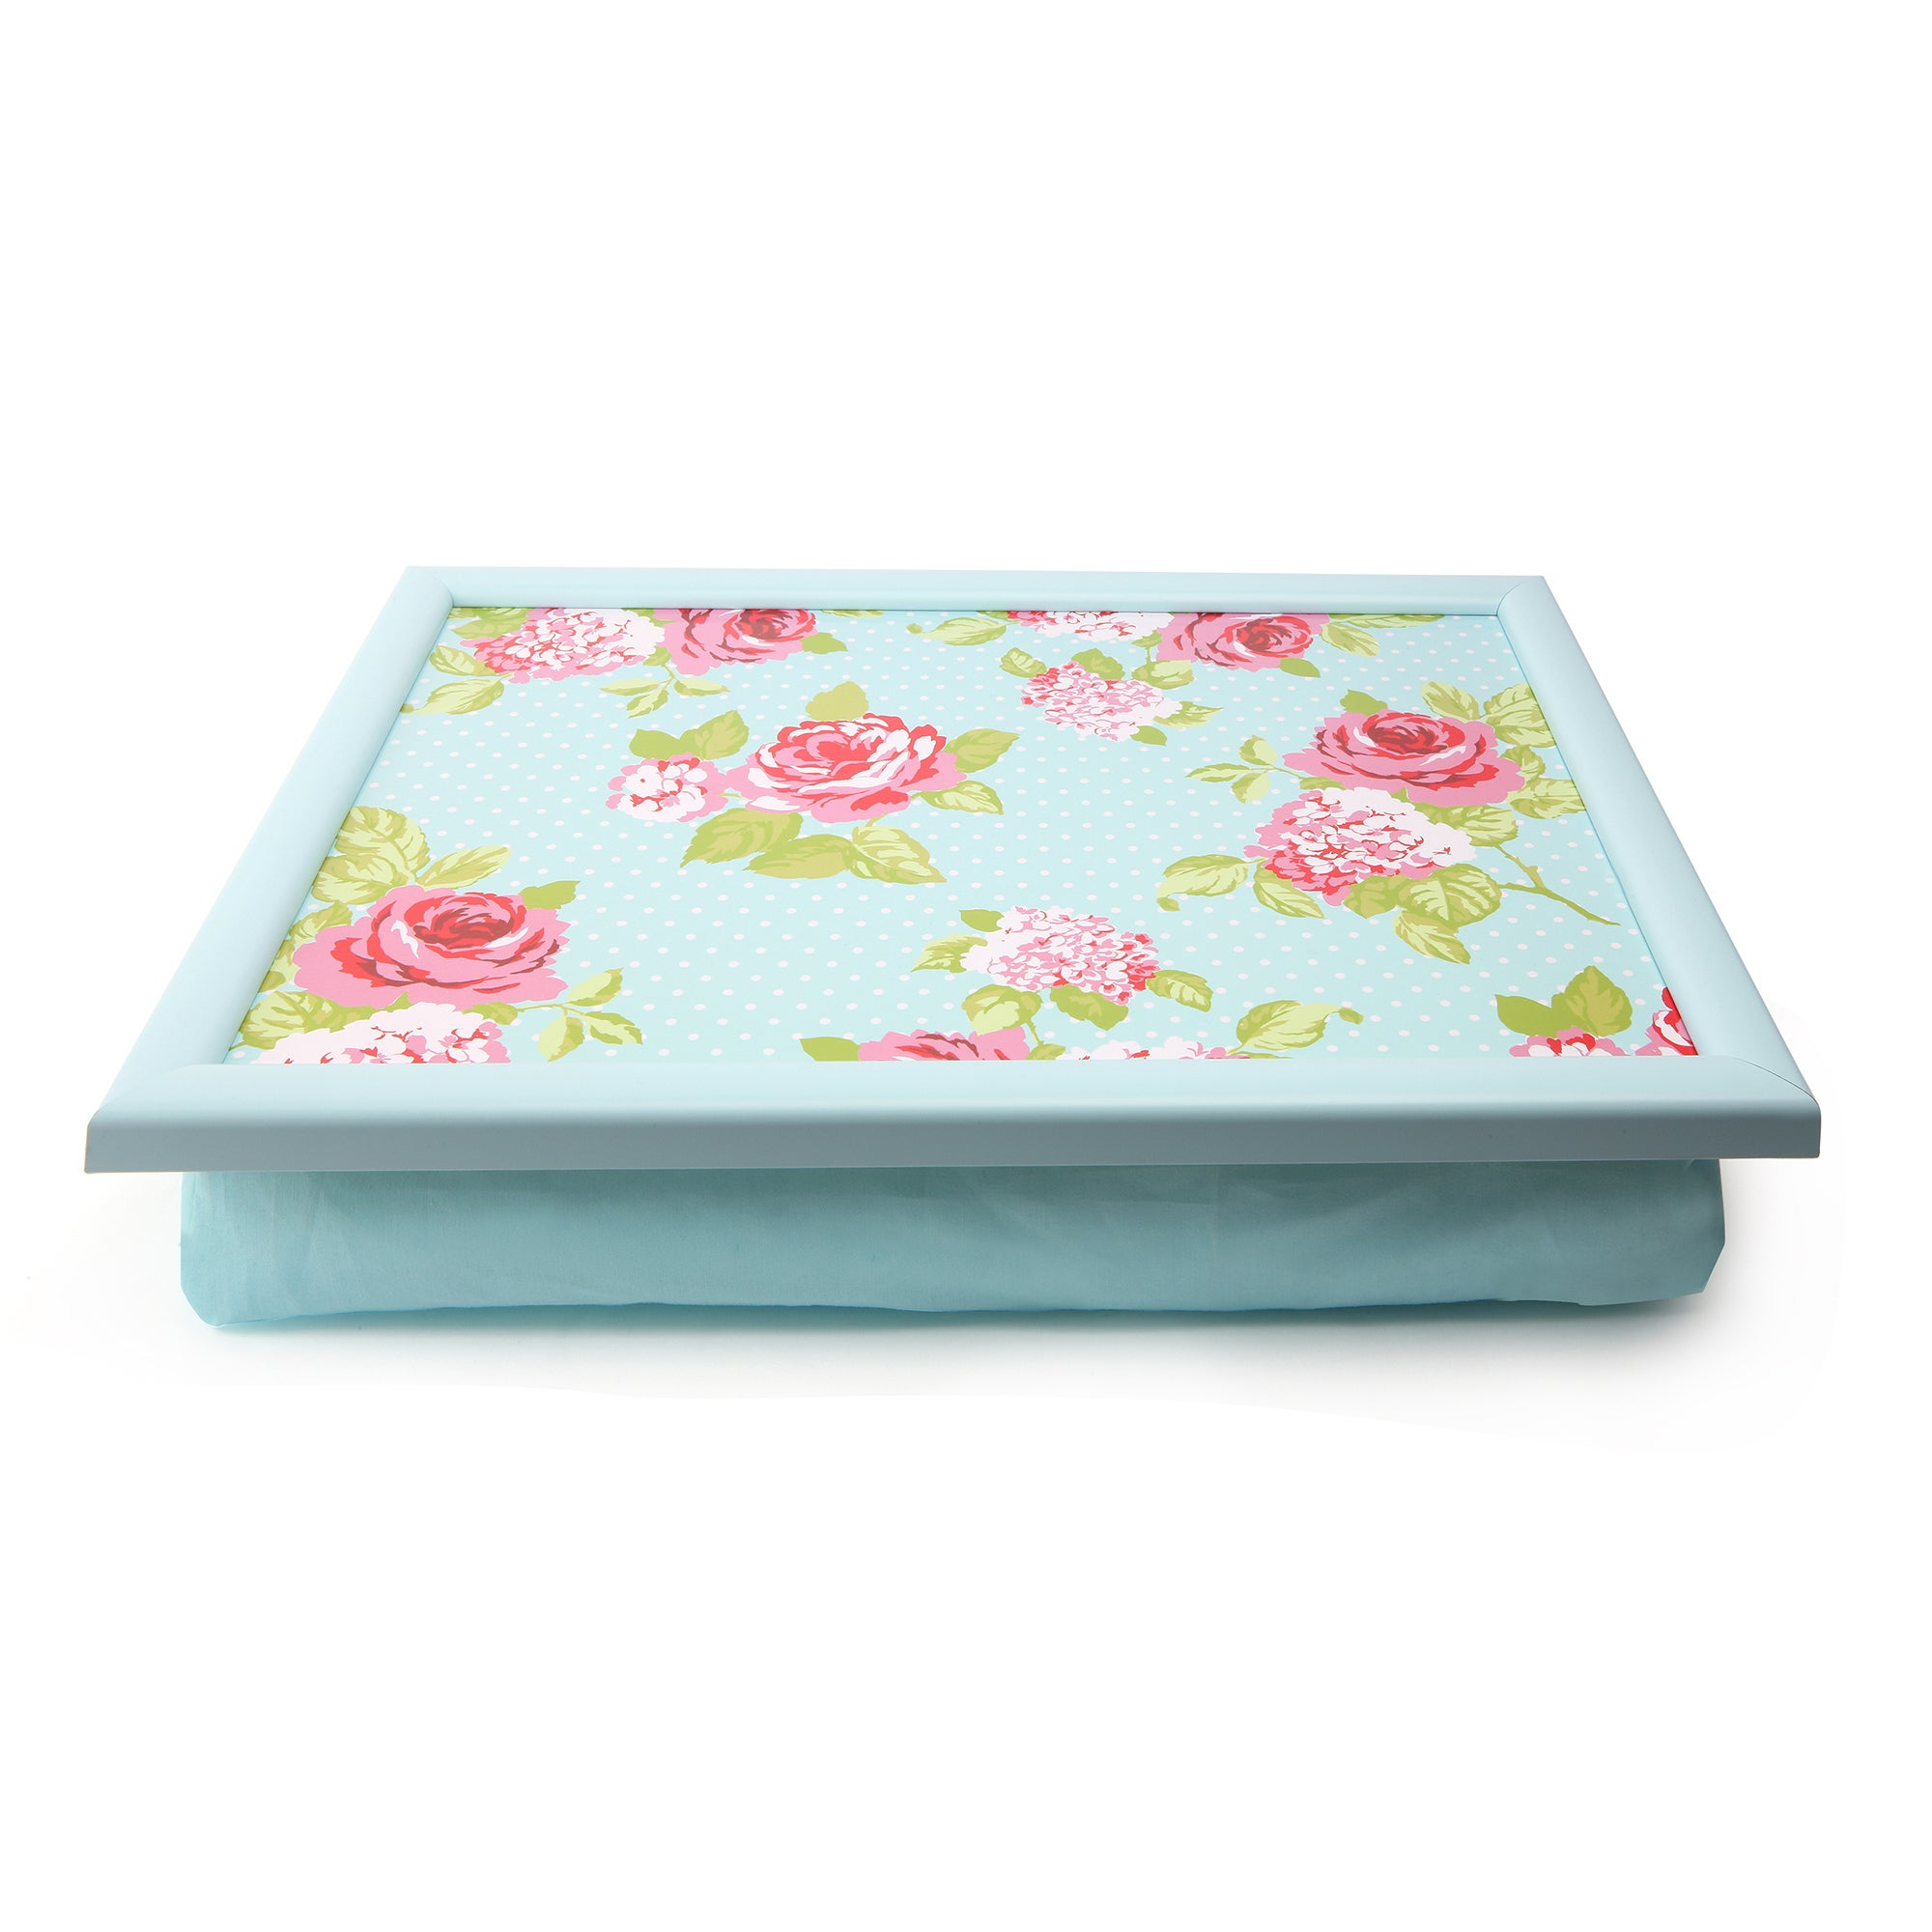 Rose and Ellis Clarendon Collection Lap Tray